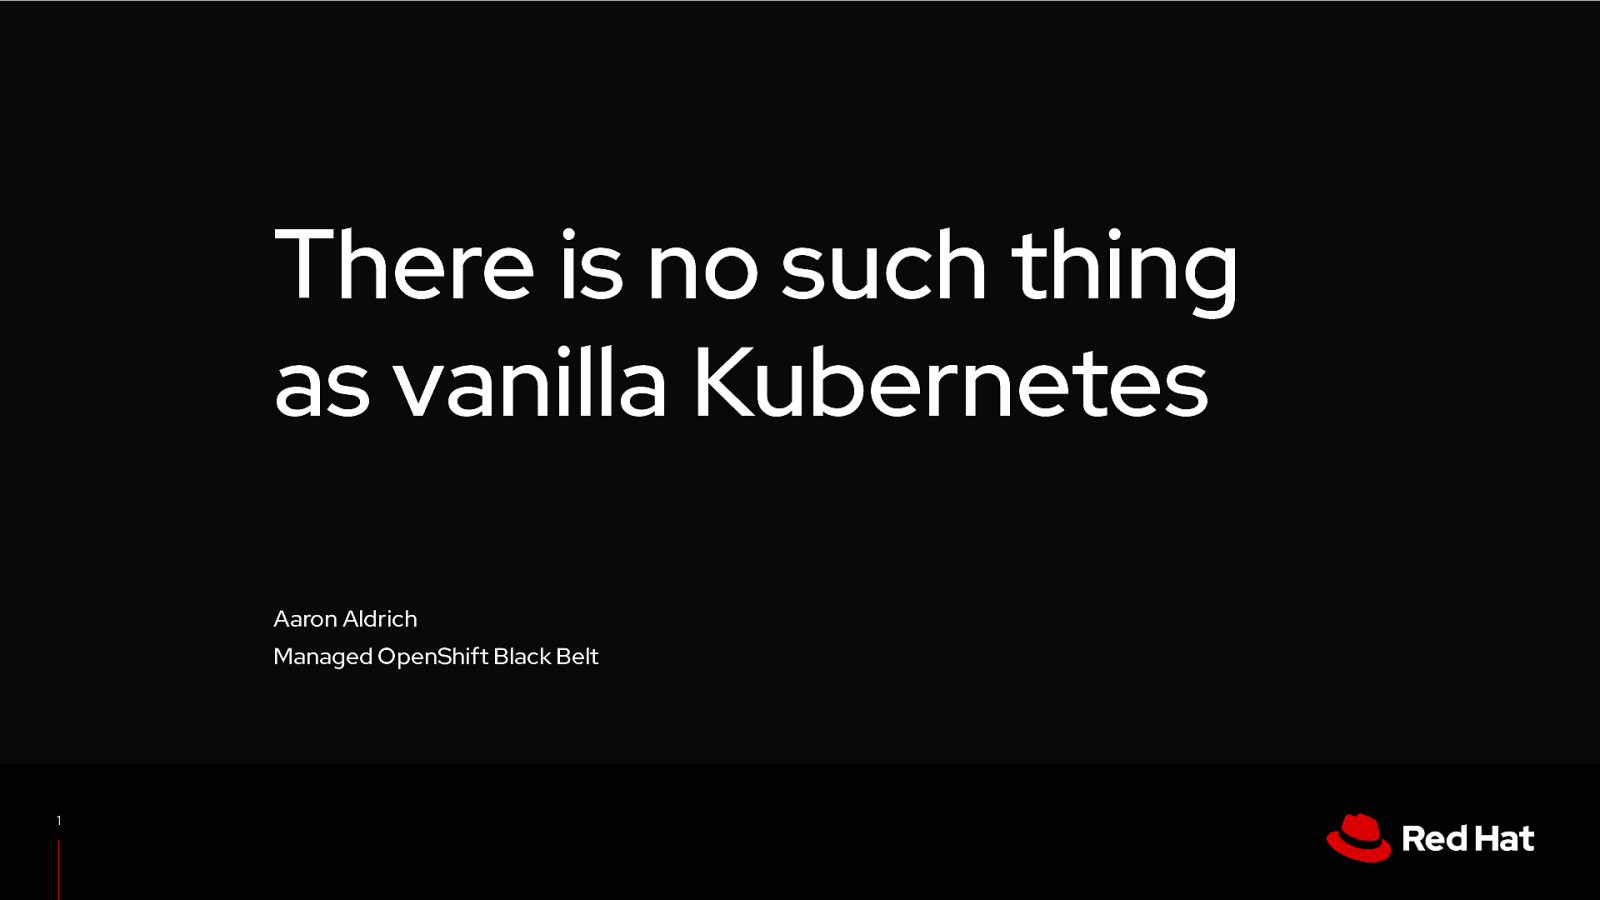 There's No Such Thing as Vanilla Kubernetes